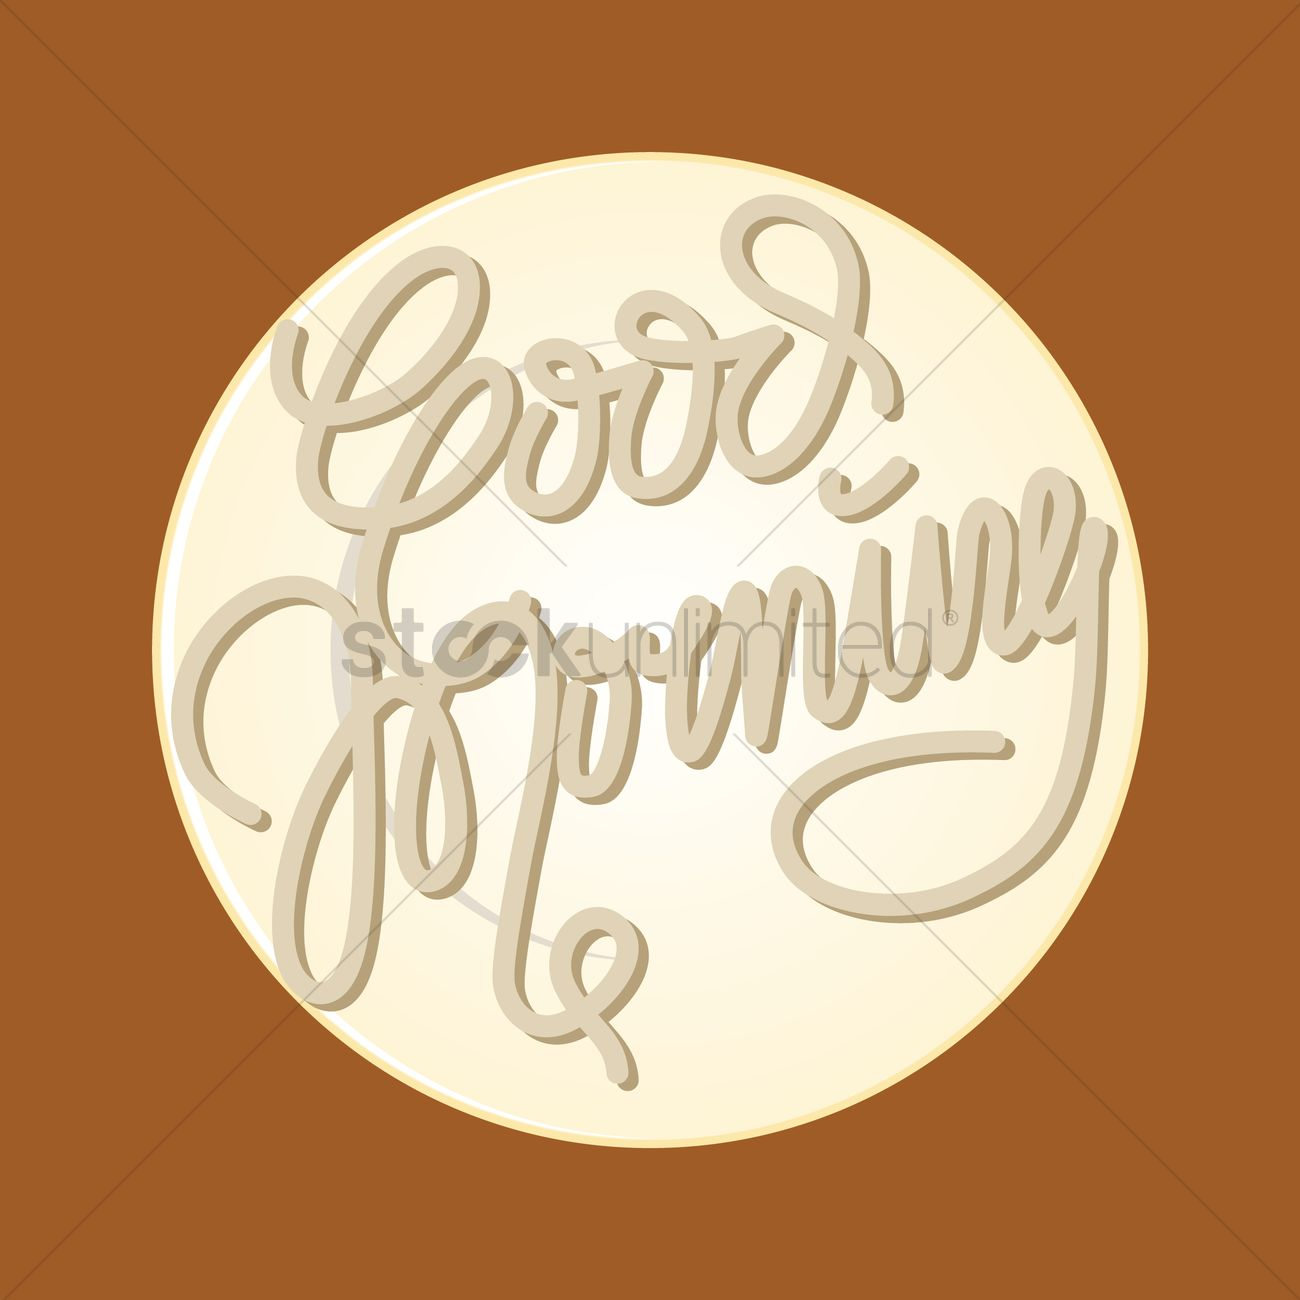 Good Morning Greeting Vector Image 1351509 Stockunlimited